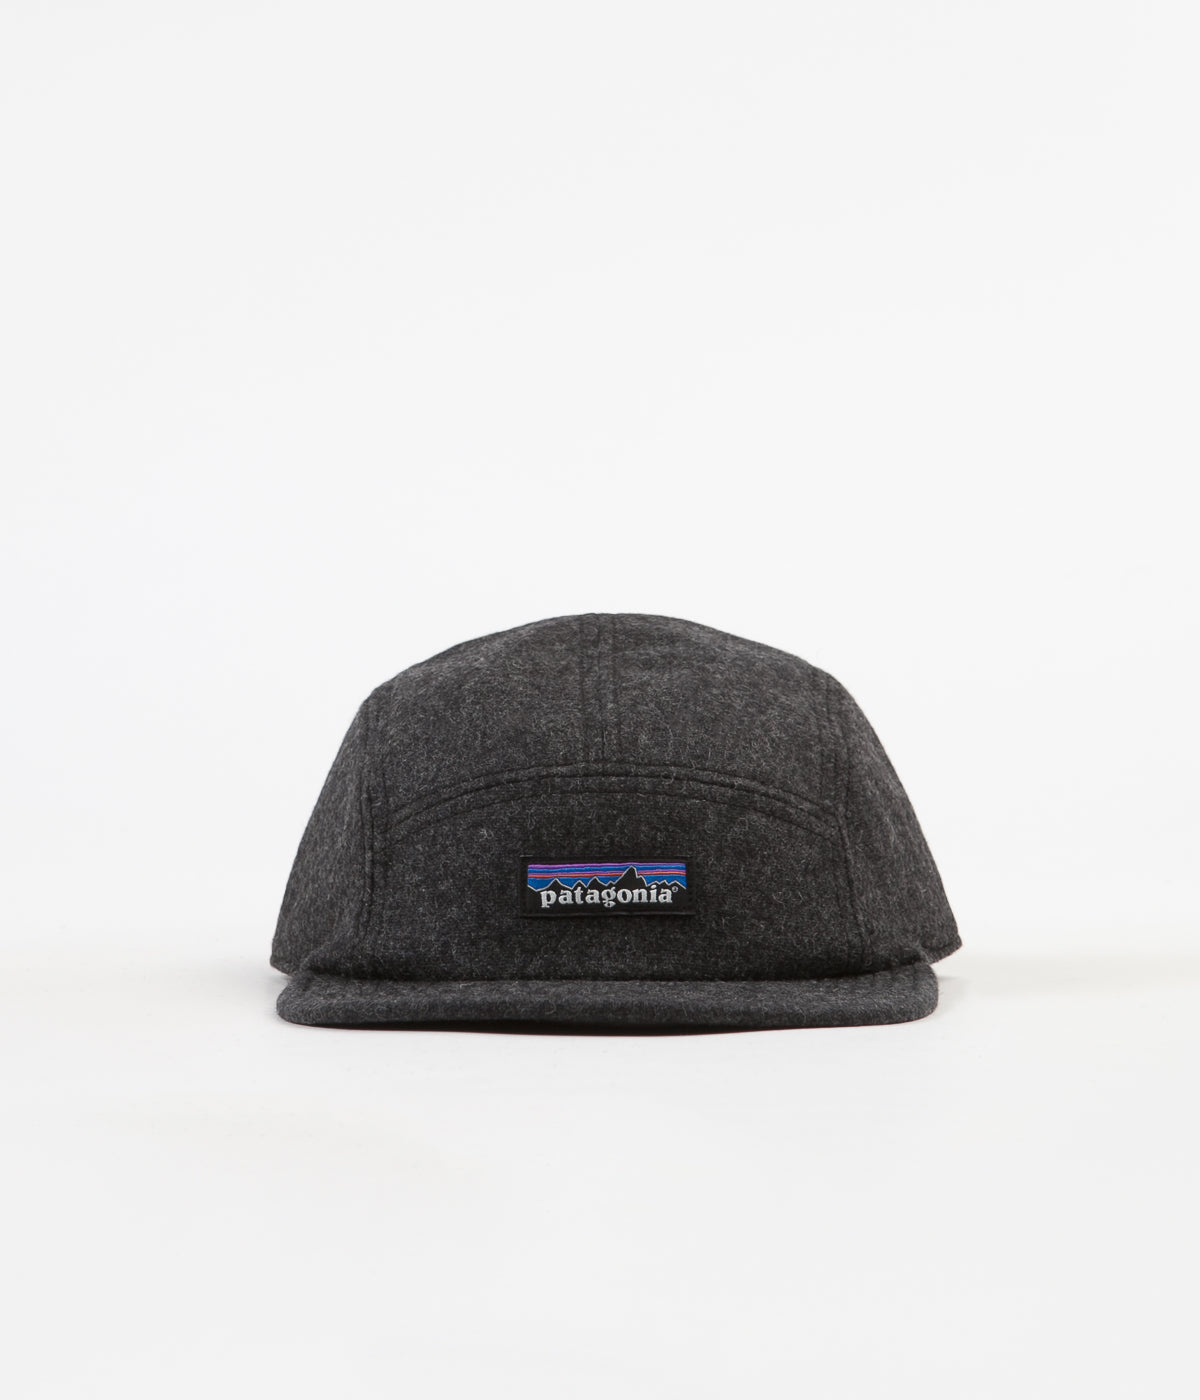 19c9a94d197 ... Patagonia Recycled Wool Cap - Forge Grey ...